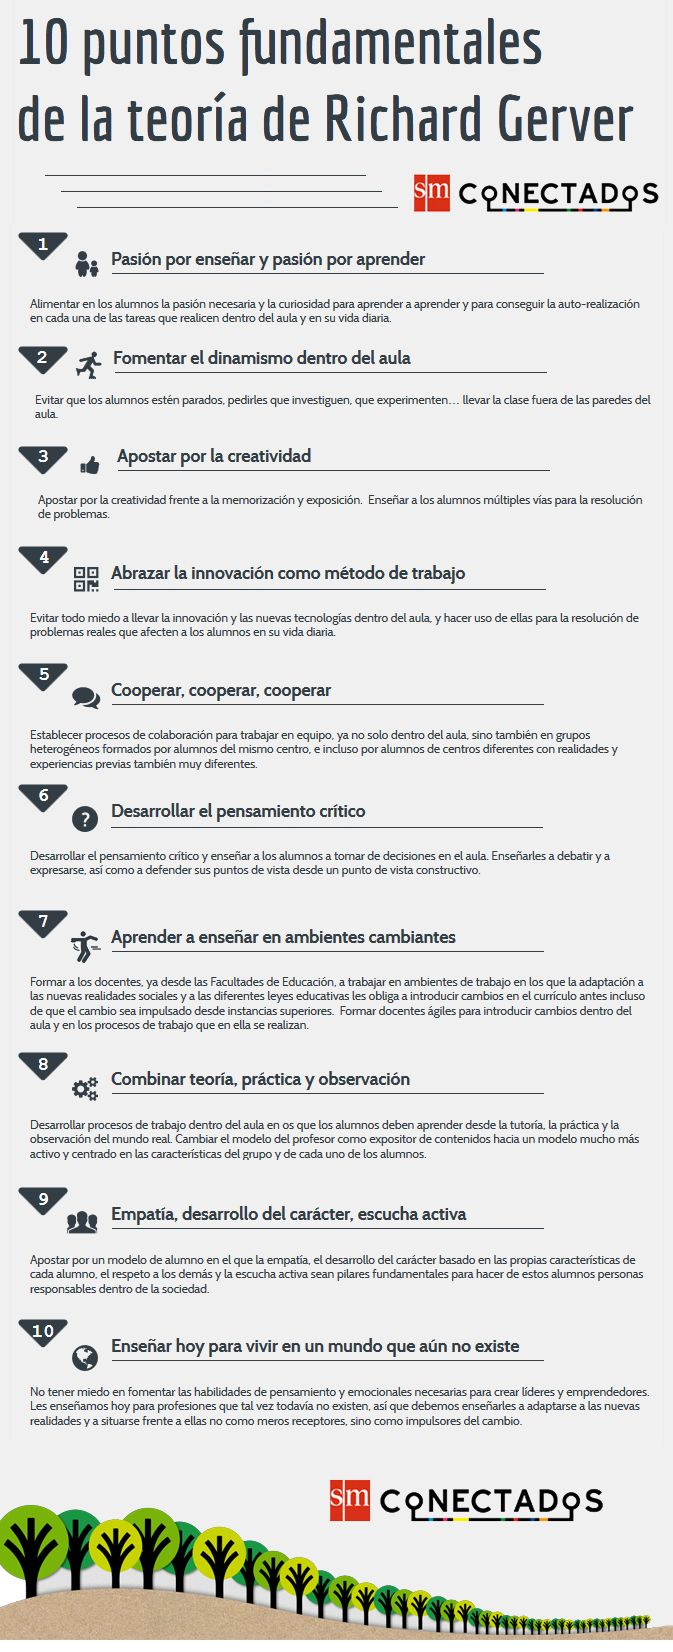 10 puntos fundamentales de la teoría de Richard Gerver #infografia #infographic #education